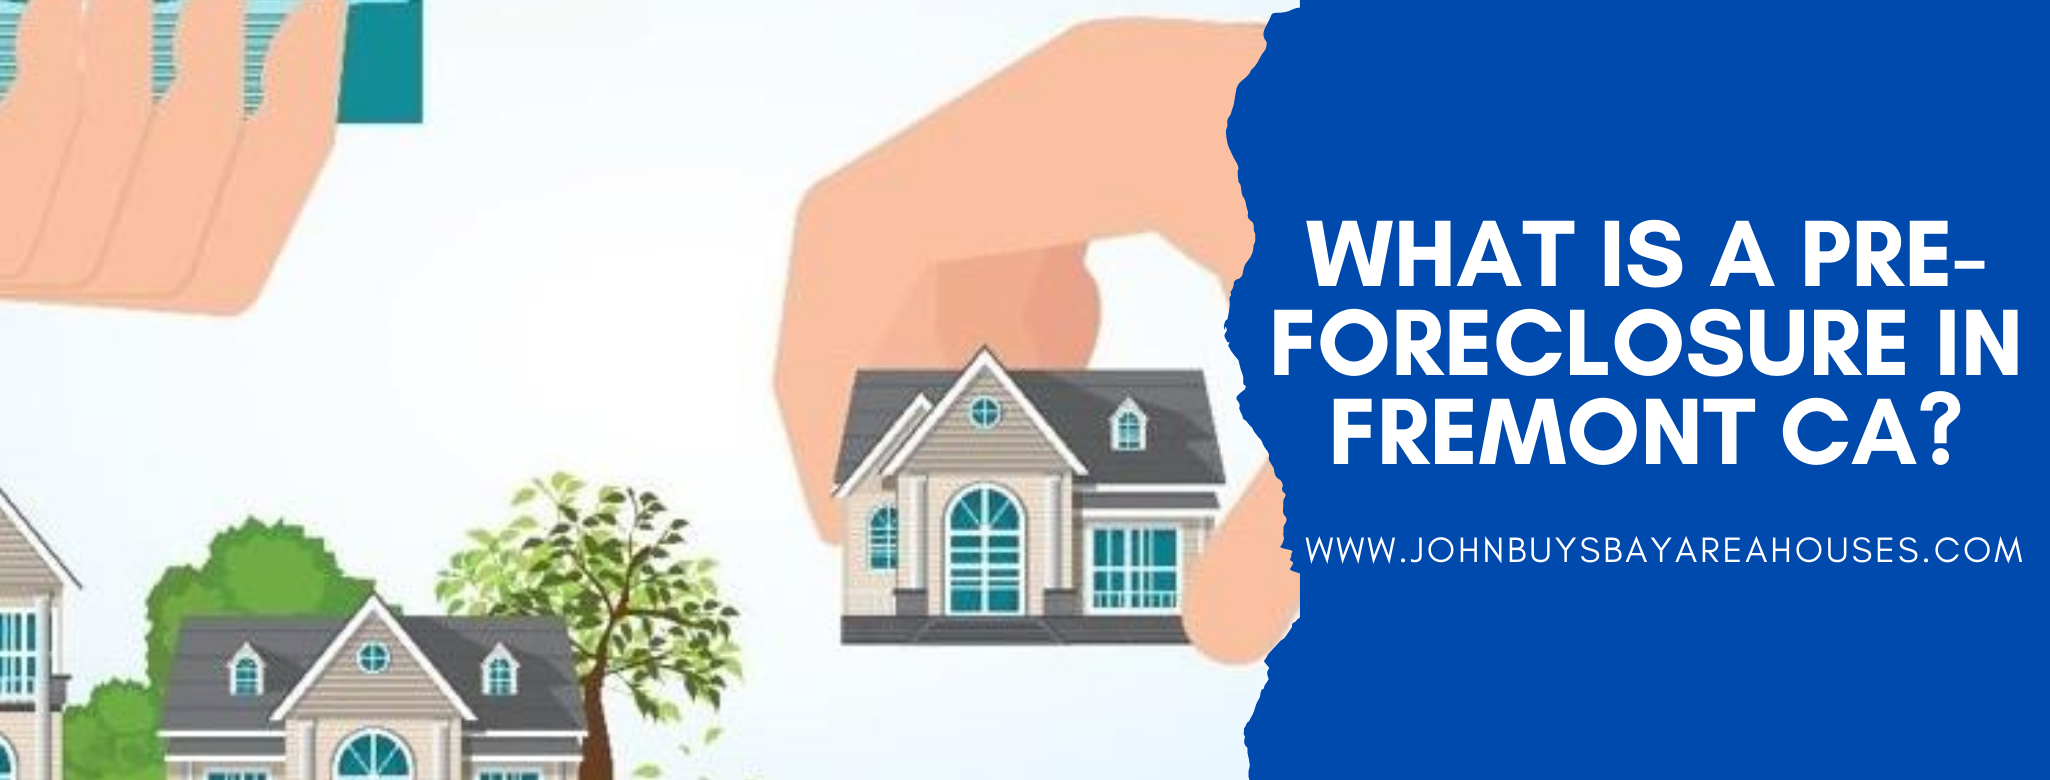 We buy properties in Fremont CA